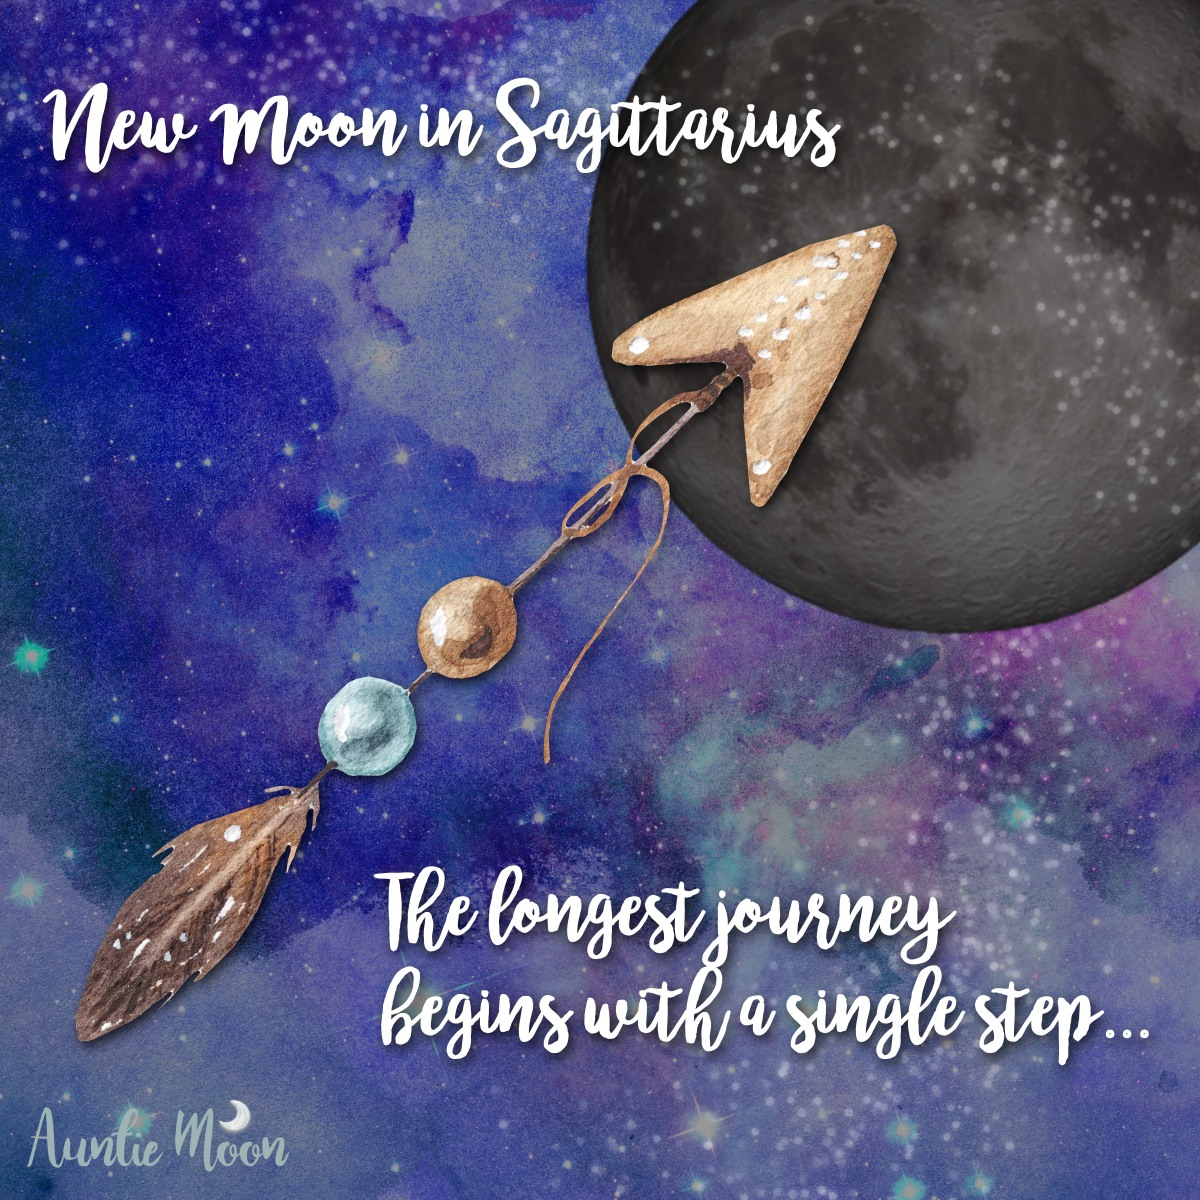 New Moon in Sagittarius: An Exercise for the Journey